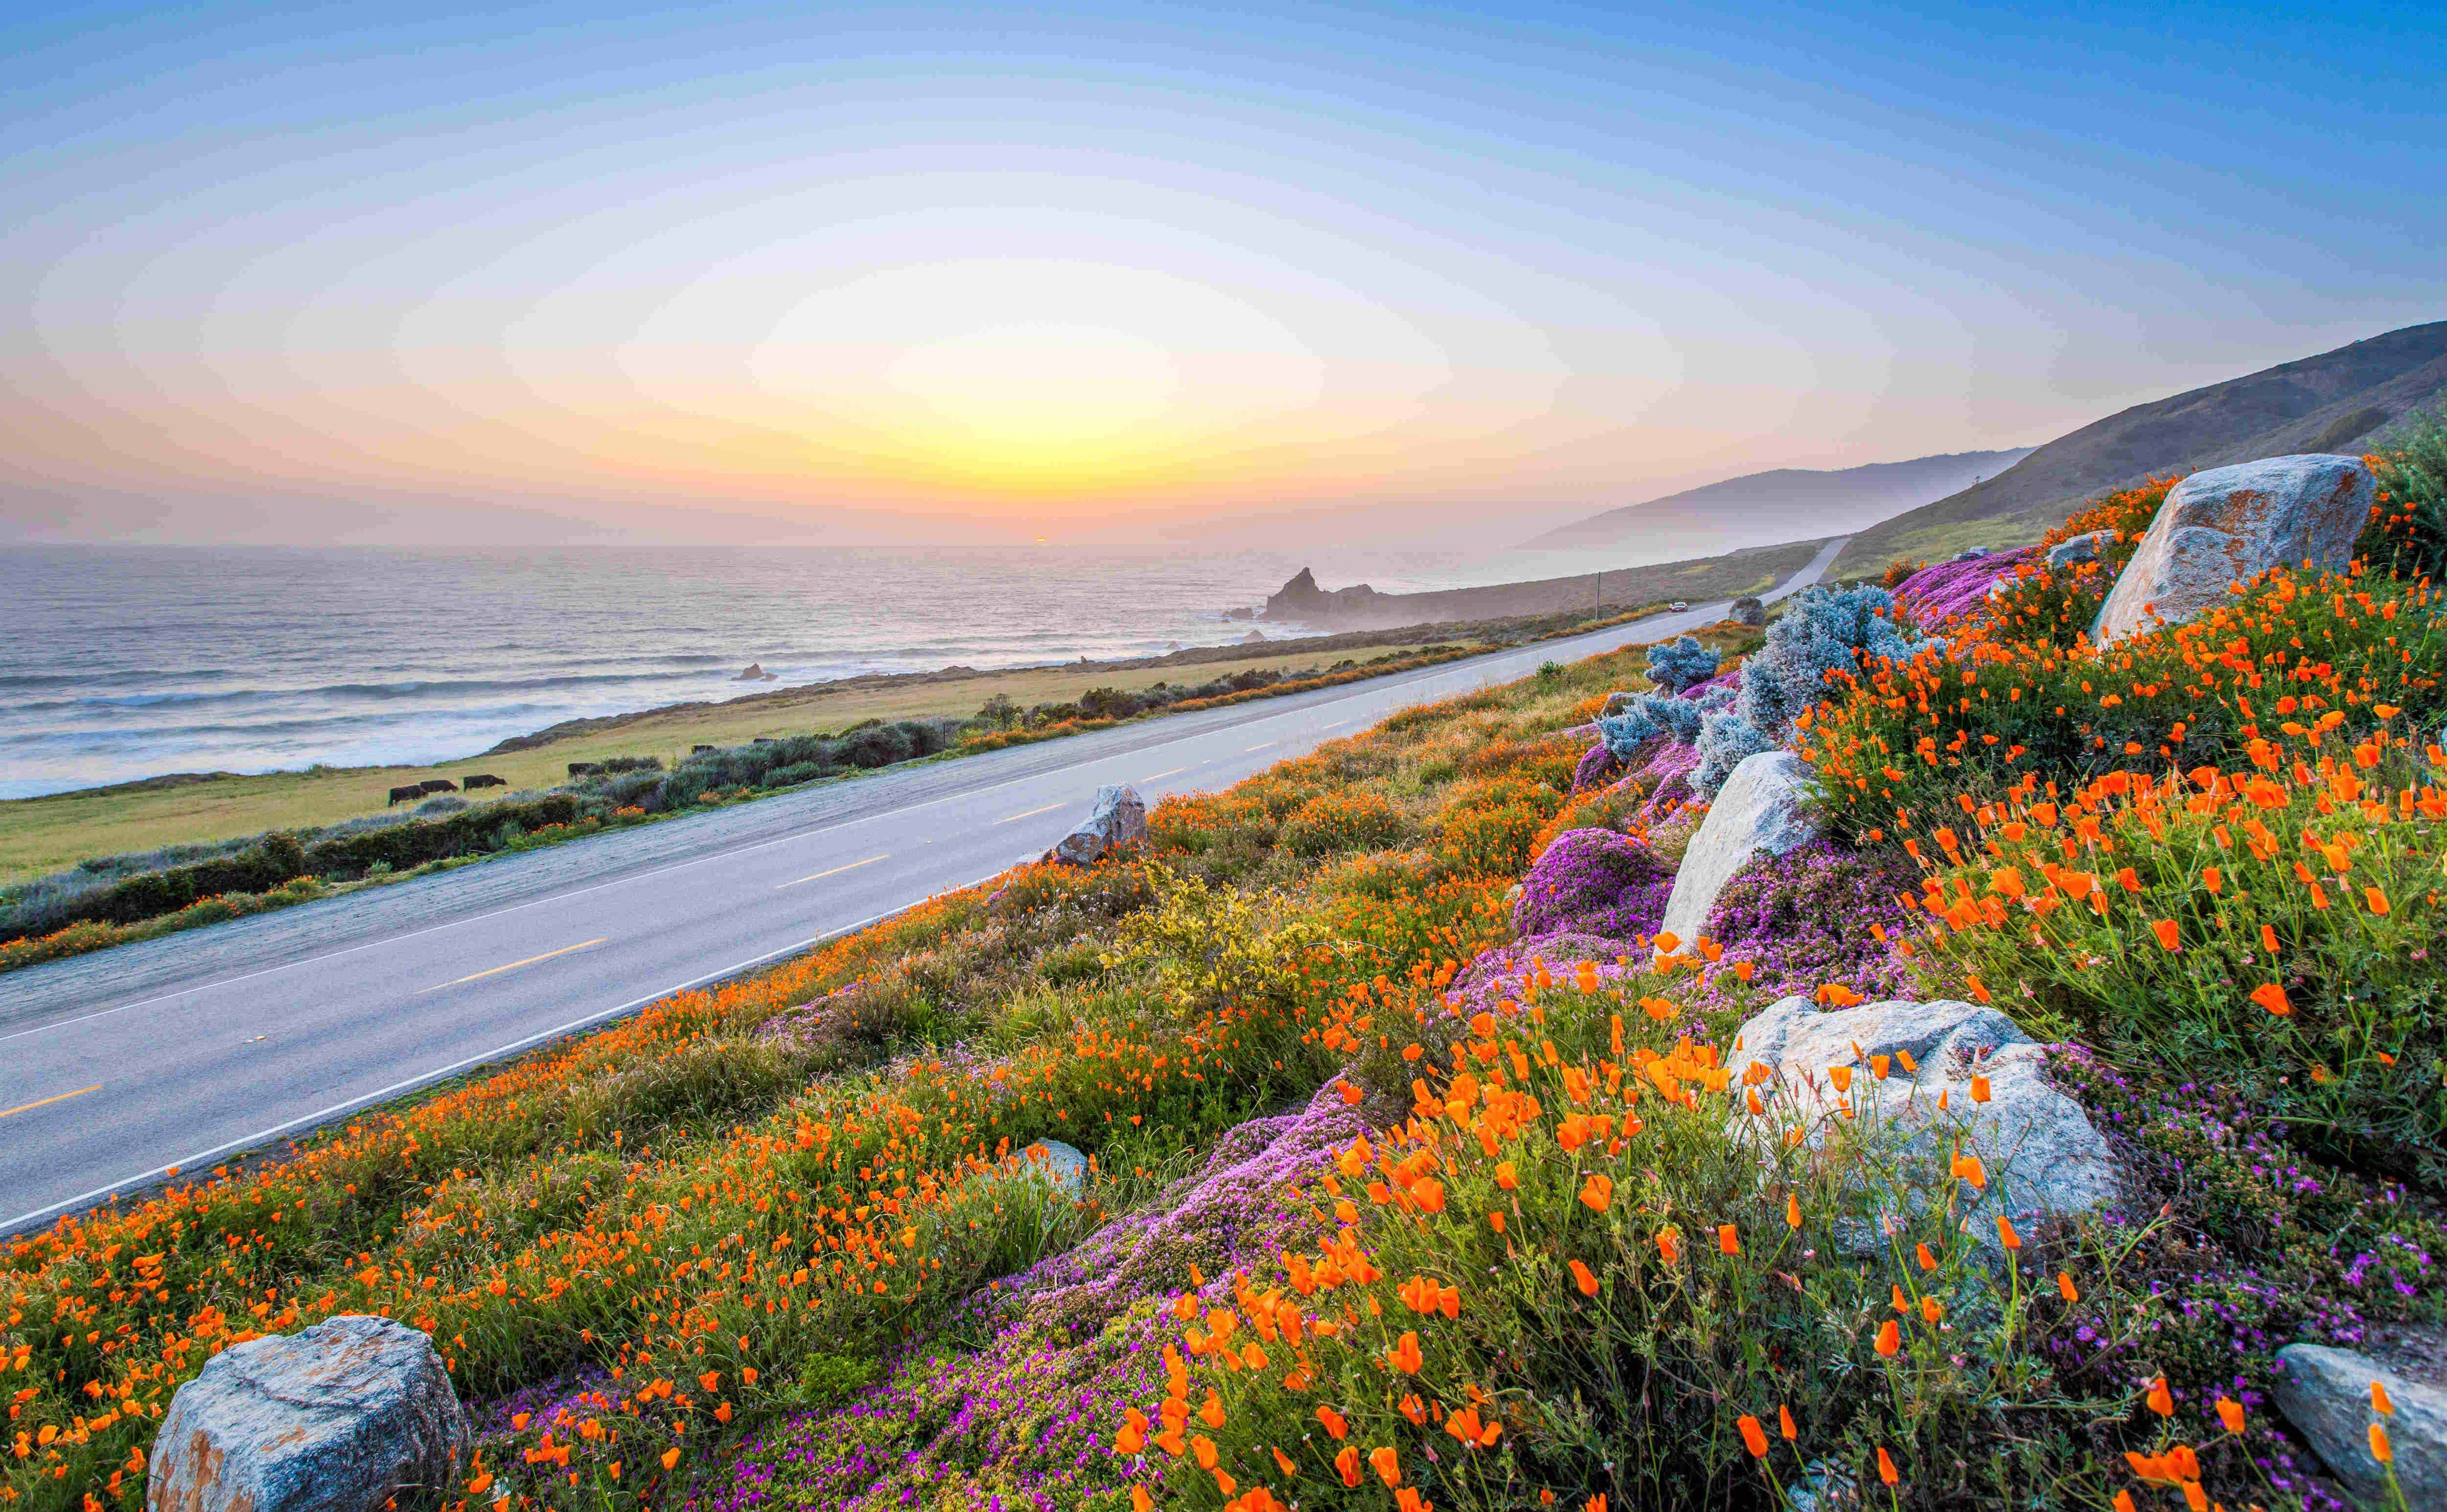 California's Big Sur: still stunning and open for business despite the landslides